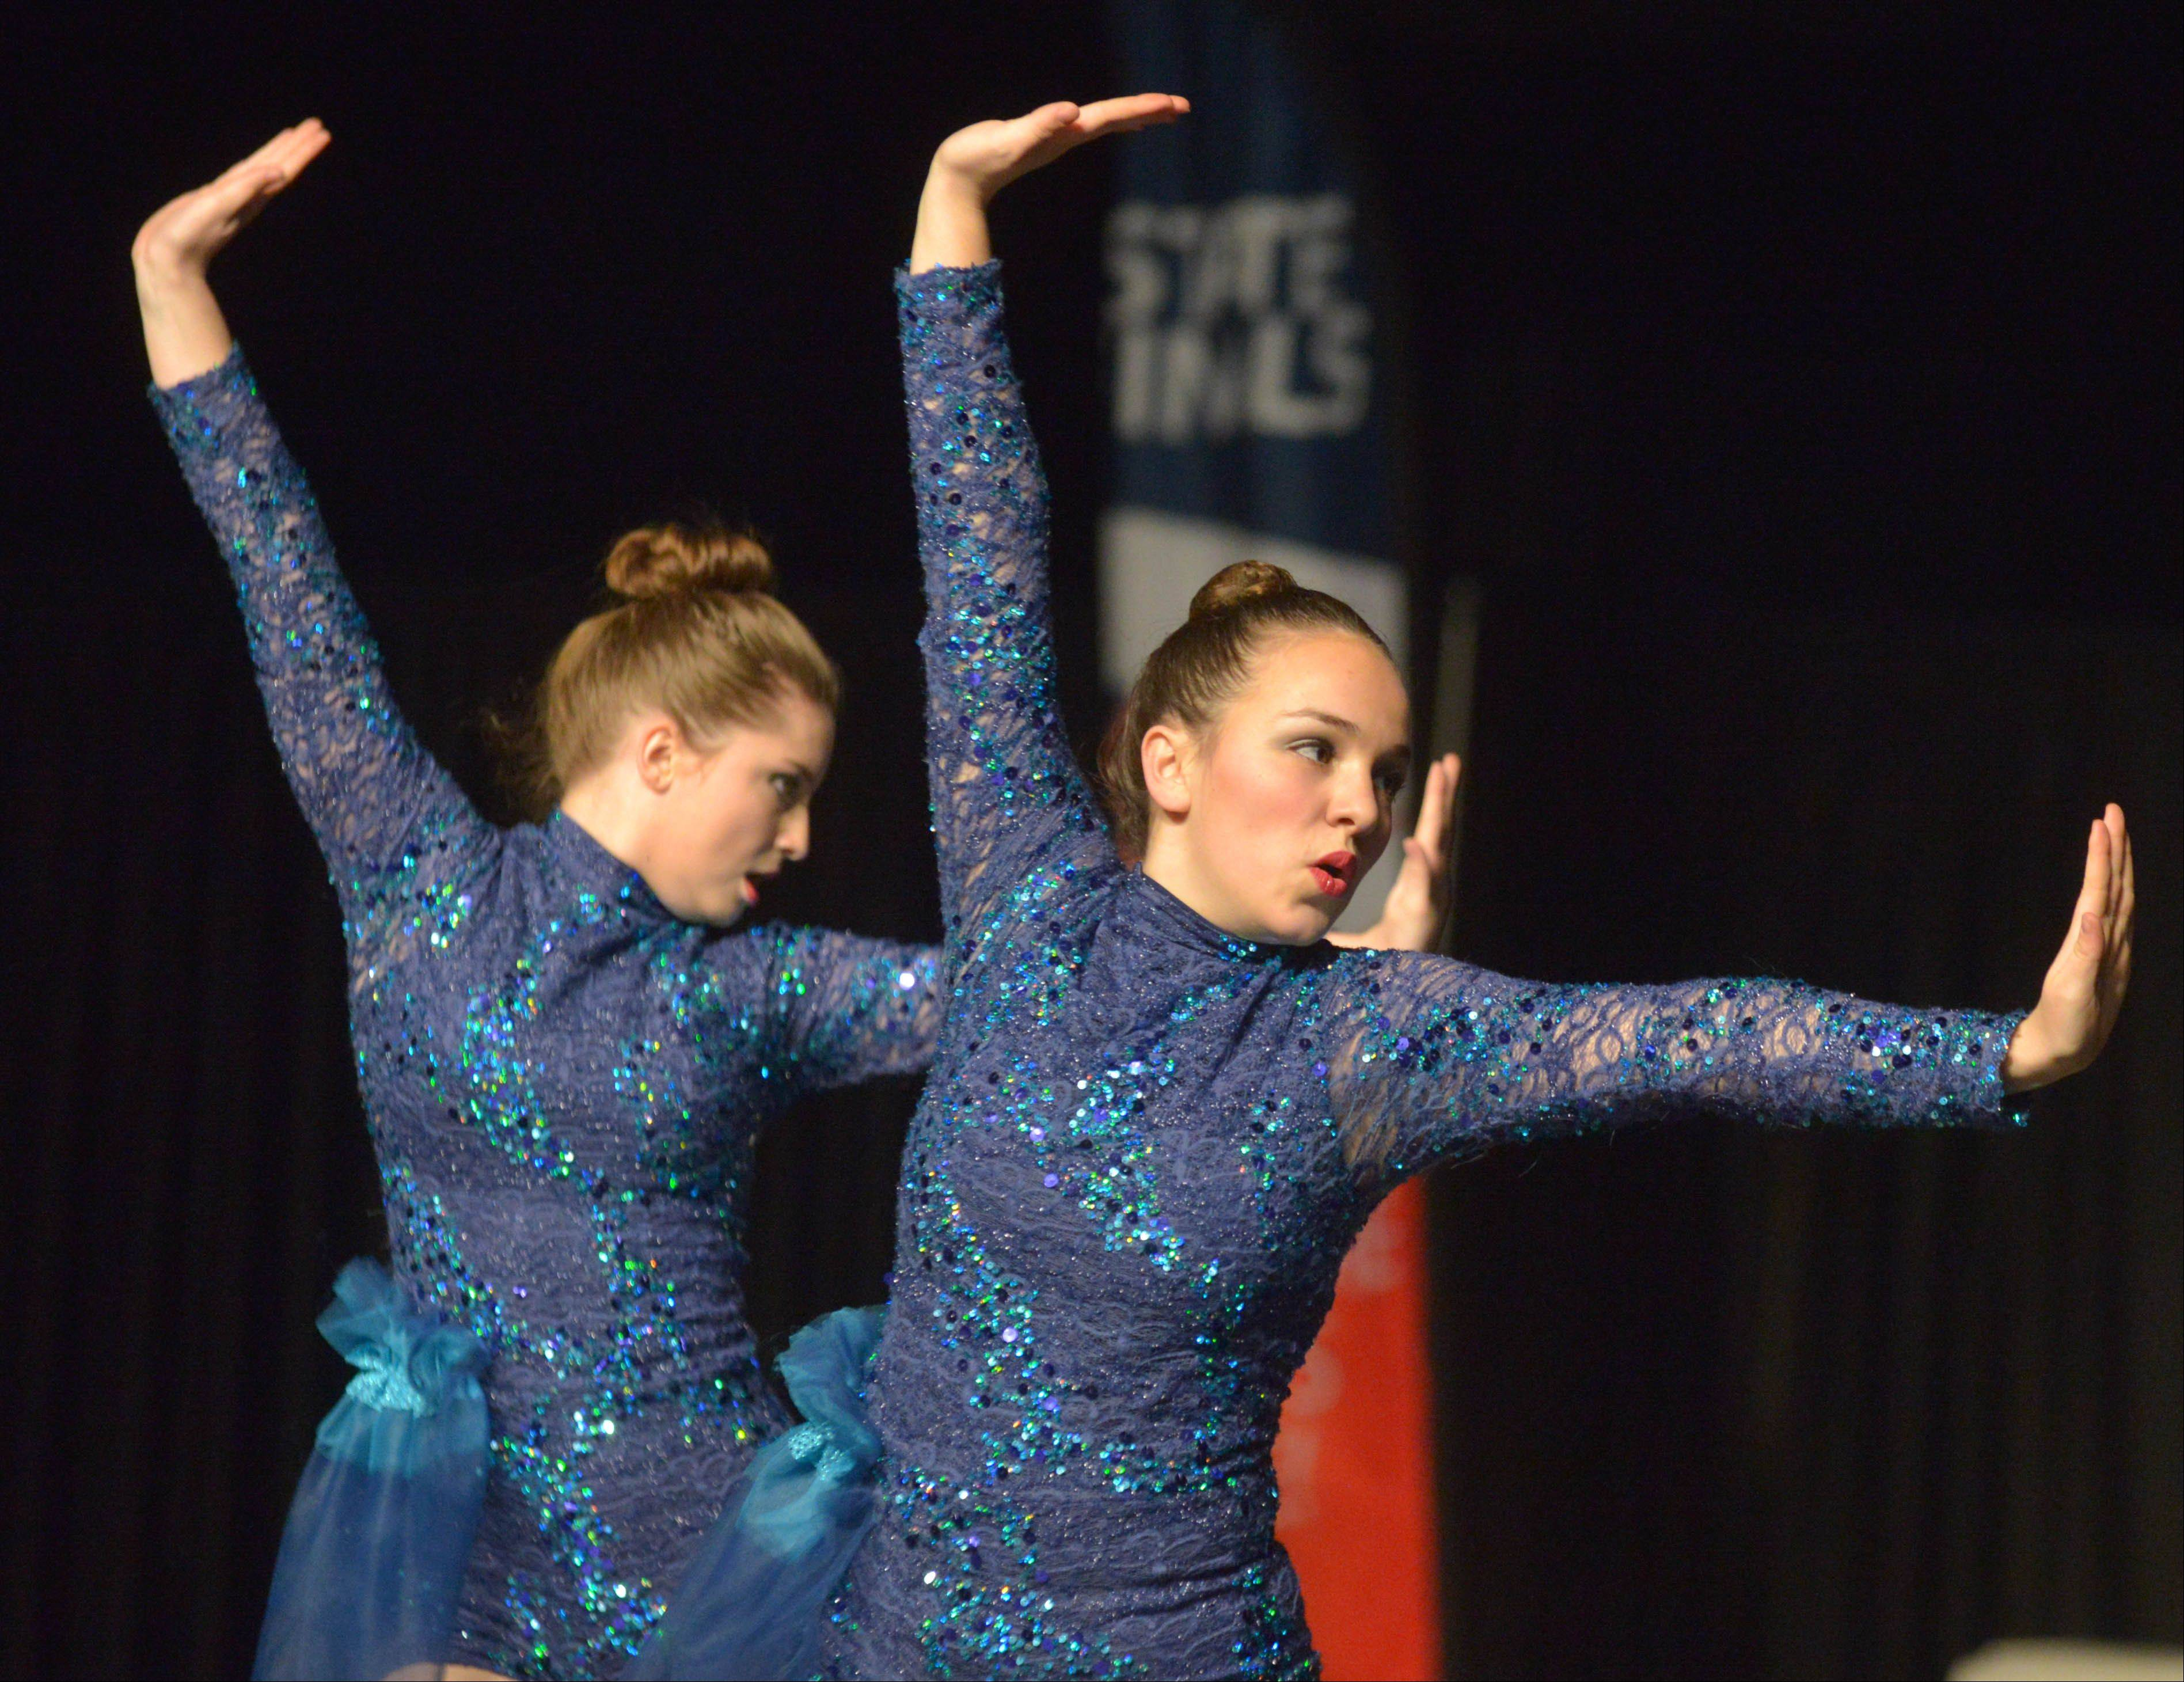 Aurora Central Catholic High School took part in the Competitive Dance preliminary round Friday at U.S. Cellular Coliseum in Bloomington.